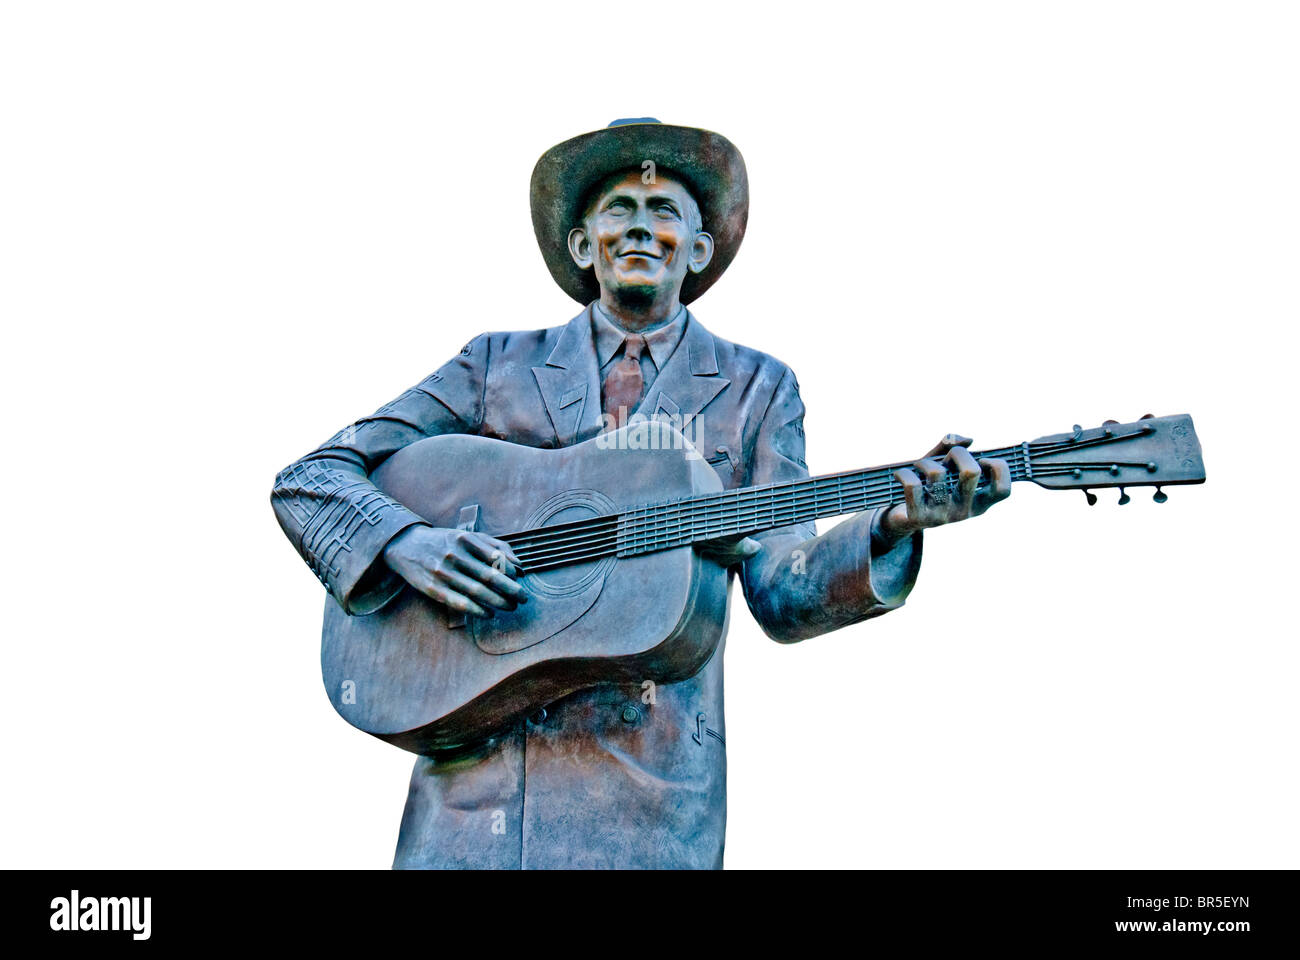 Hank Williams, country music legend, memorial statue (by Doug and Sandra McDonald), Montgomery, Alabama, USA - Stock Image